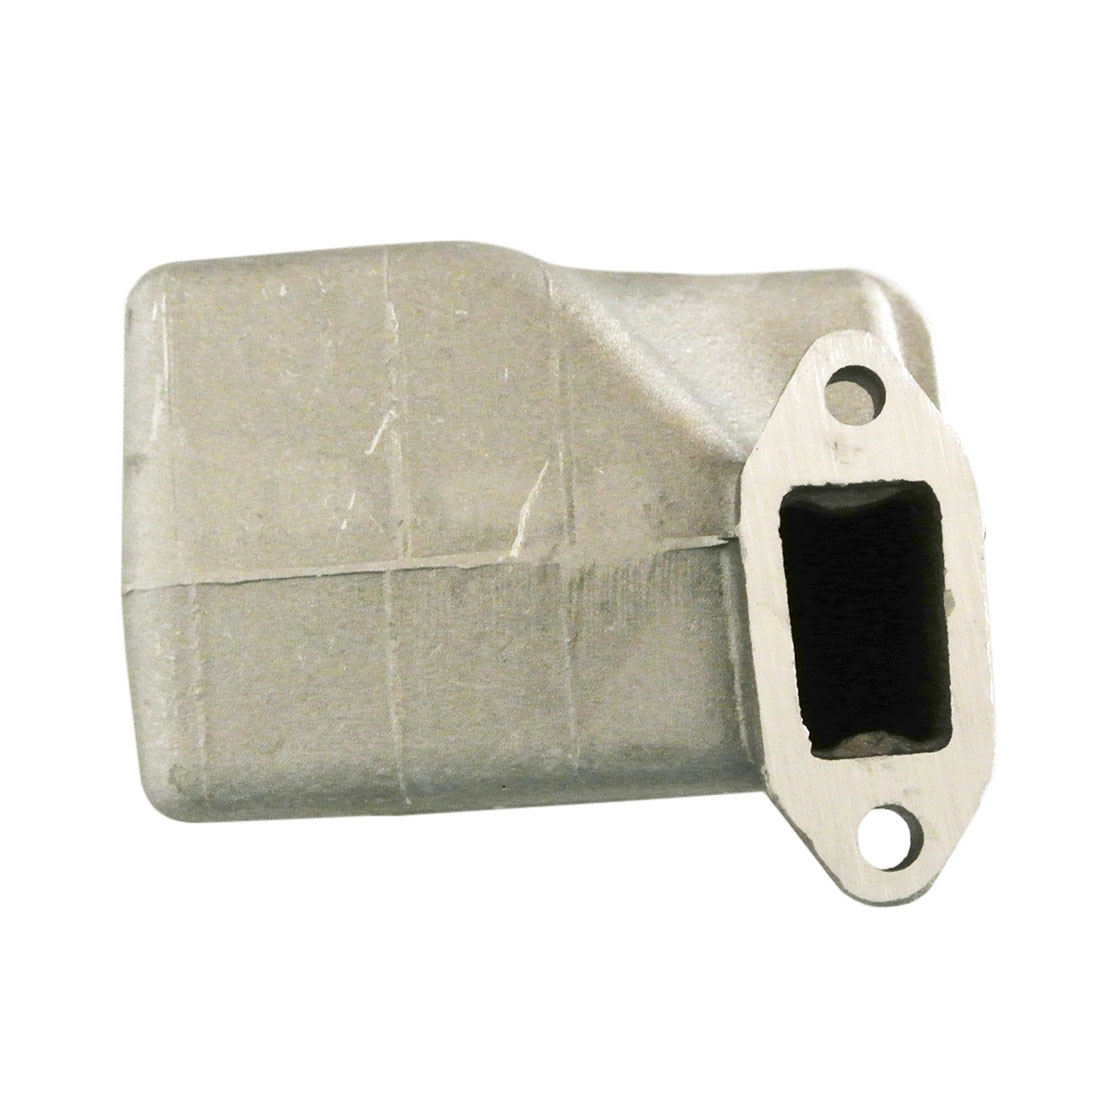 Chainsaw Muffler Exhaust  Fits STIHL 070 090 Replace 1106 140 0502